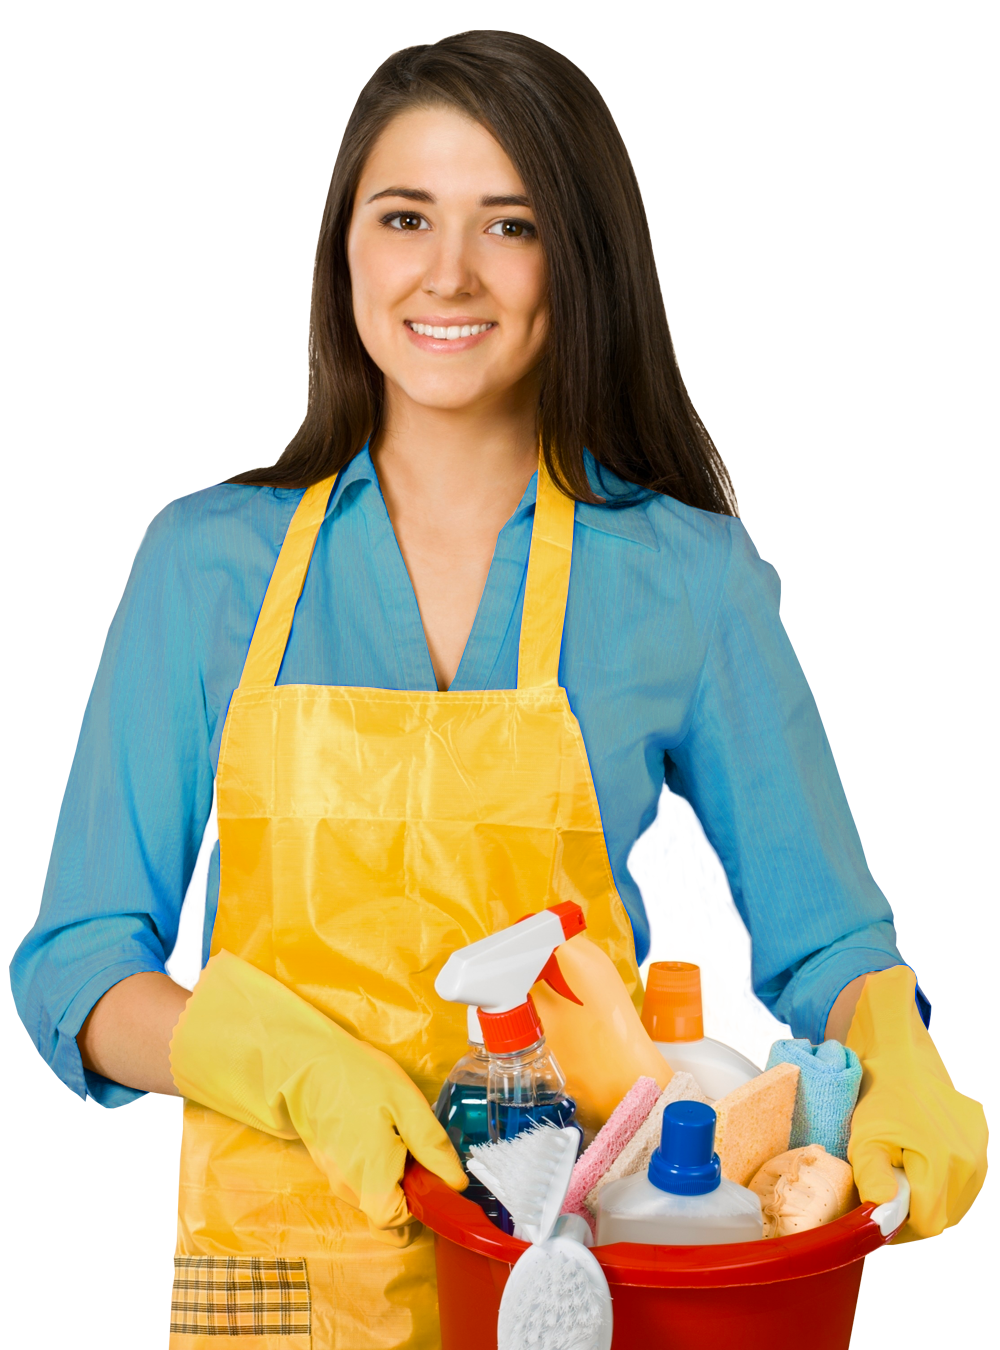 Cleaning Lady PNG HD - 142424